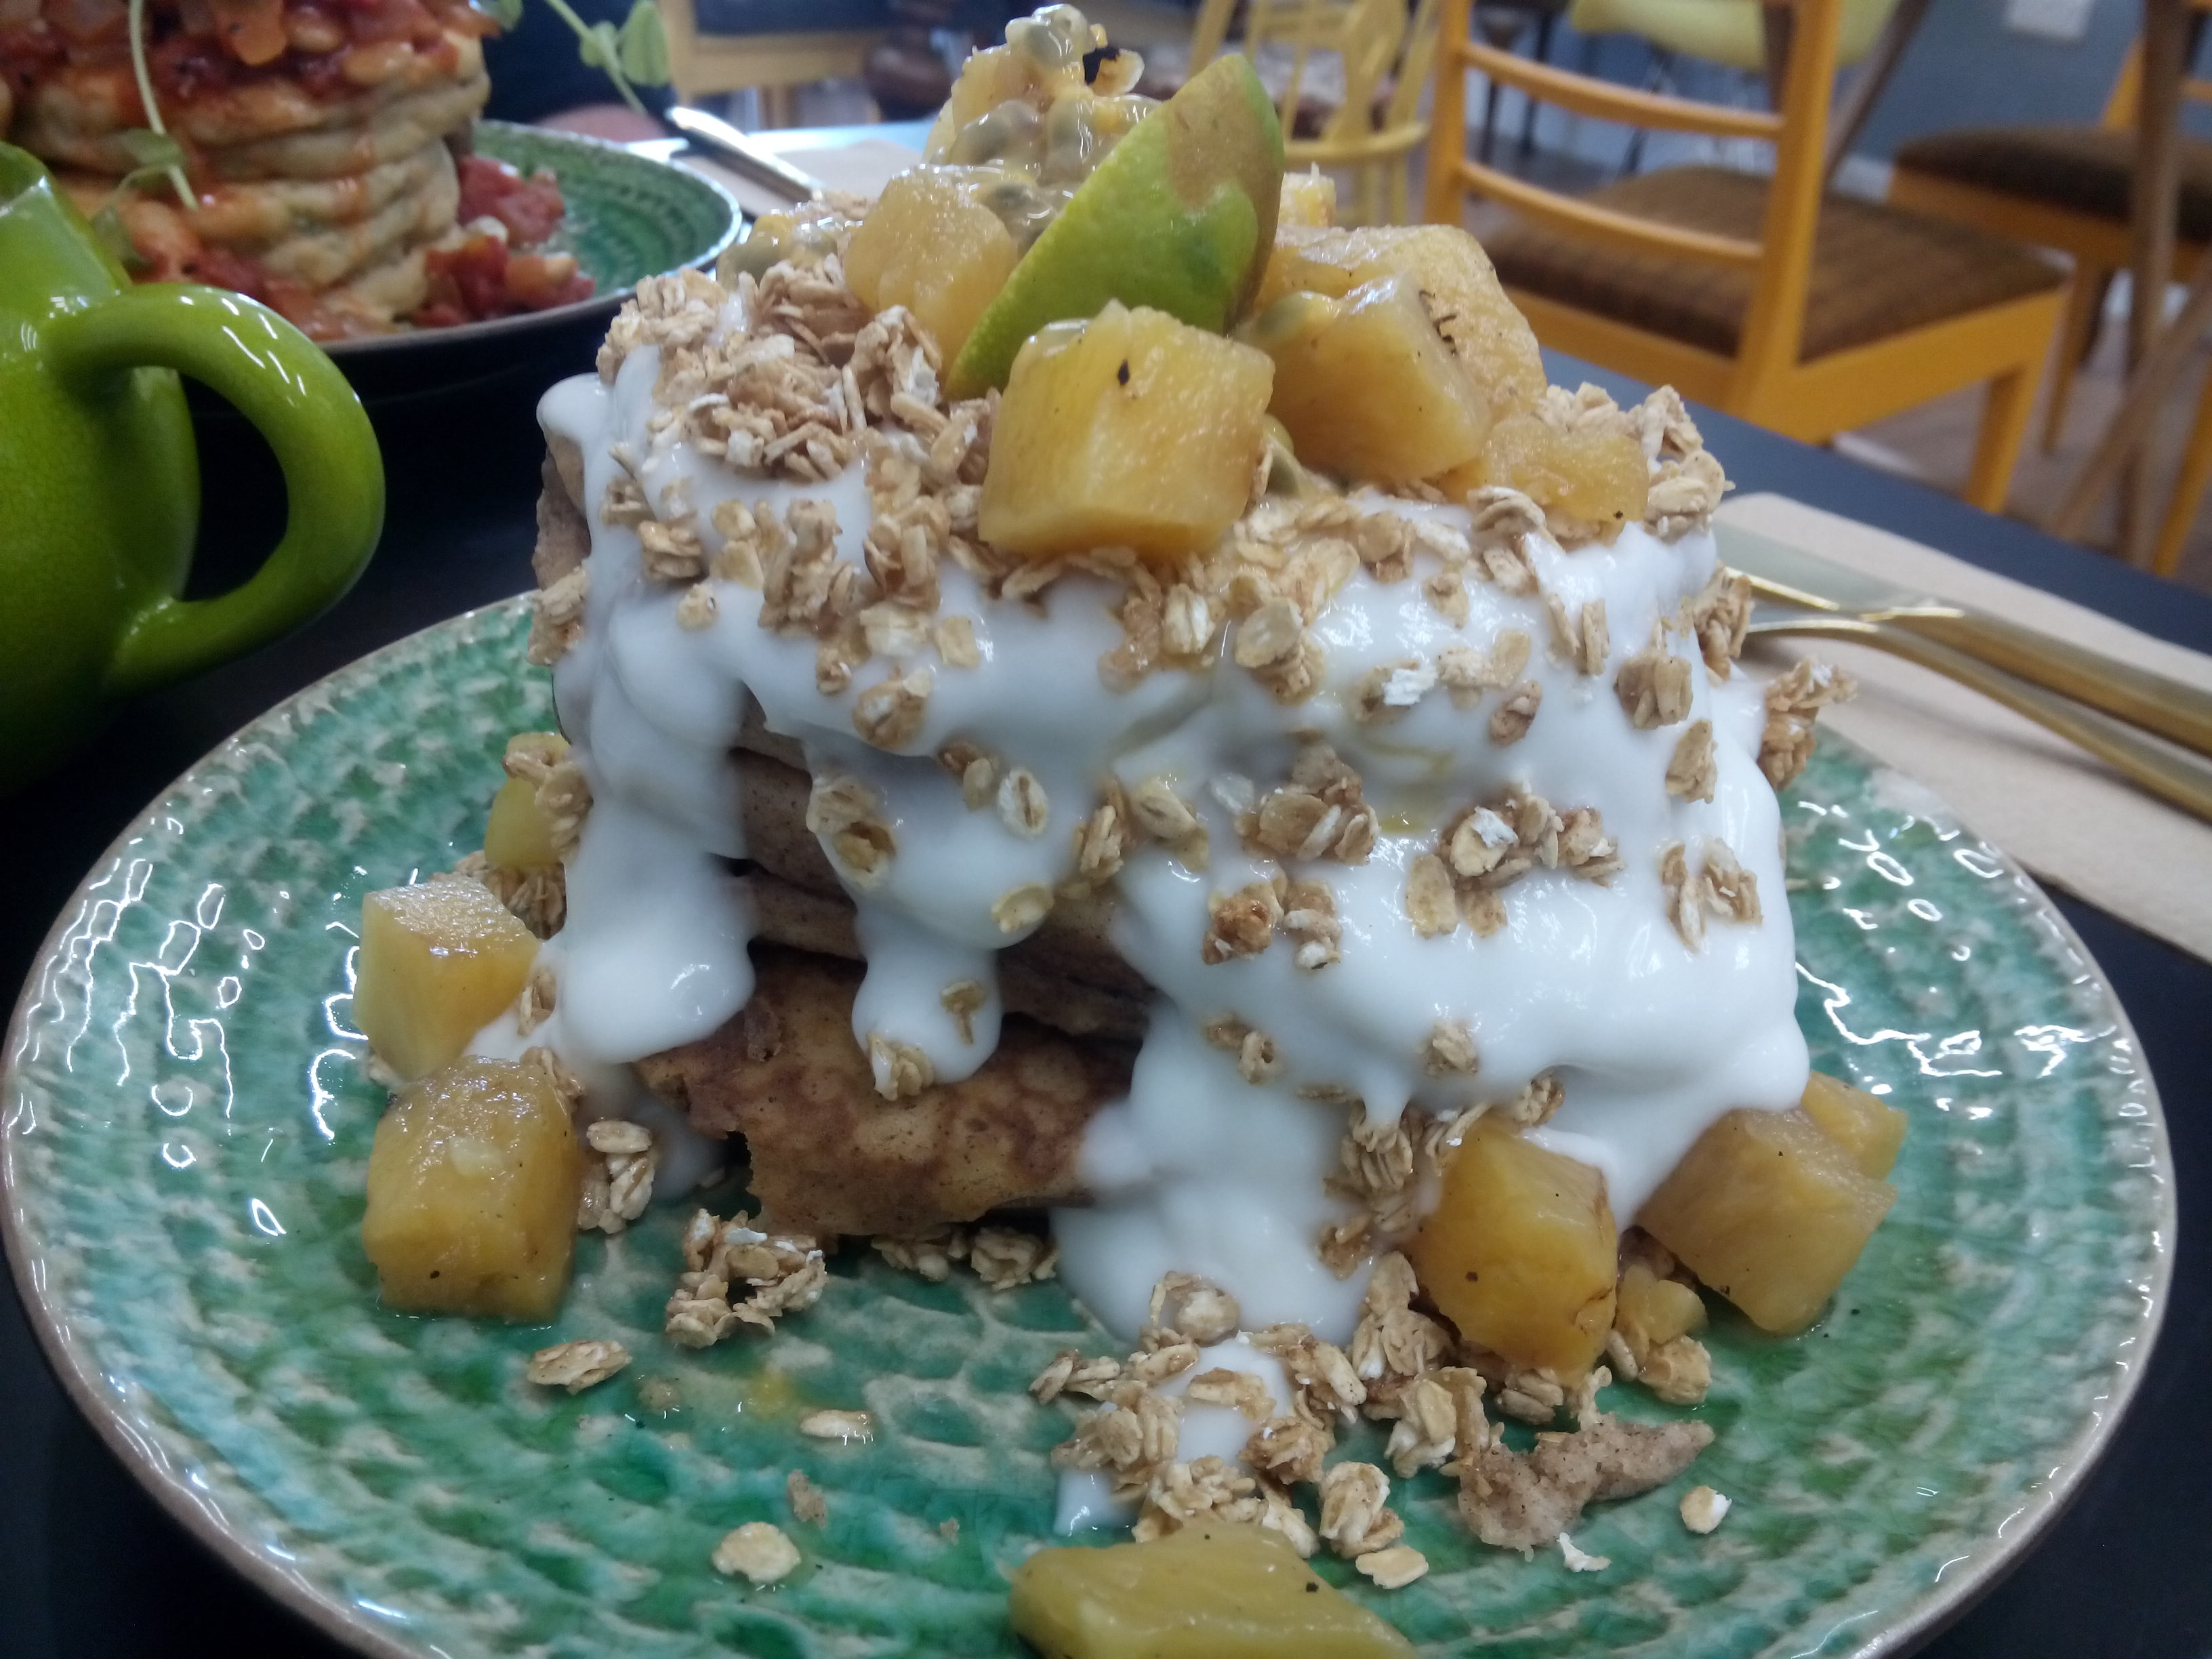 A fat pancake stack covered in coconut yoghurt and yellow fruits